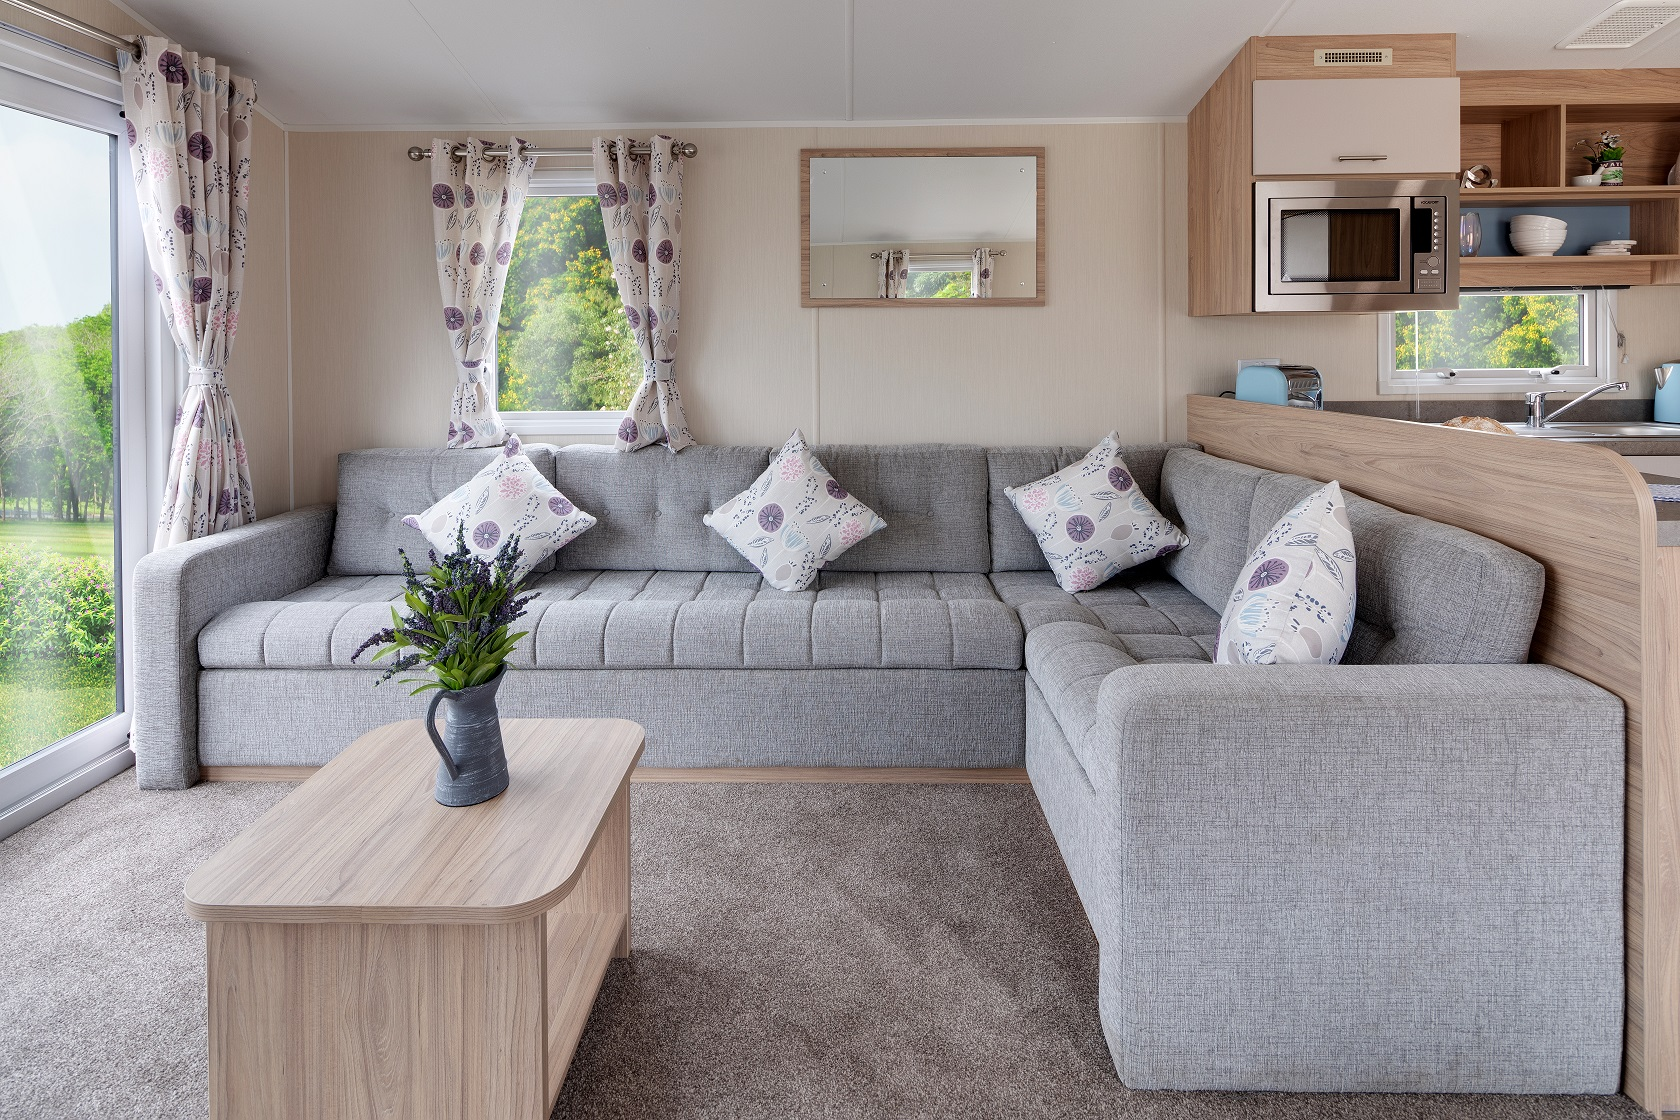 Willerby Linwood: New Static Caravans and Holiday Homes for Sale, Langley Moor, Durham Large Image 1